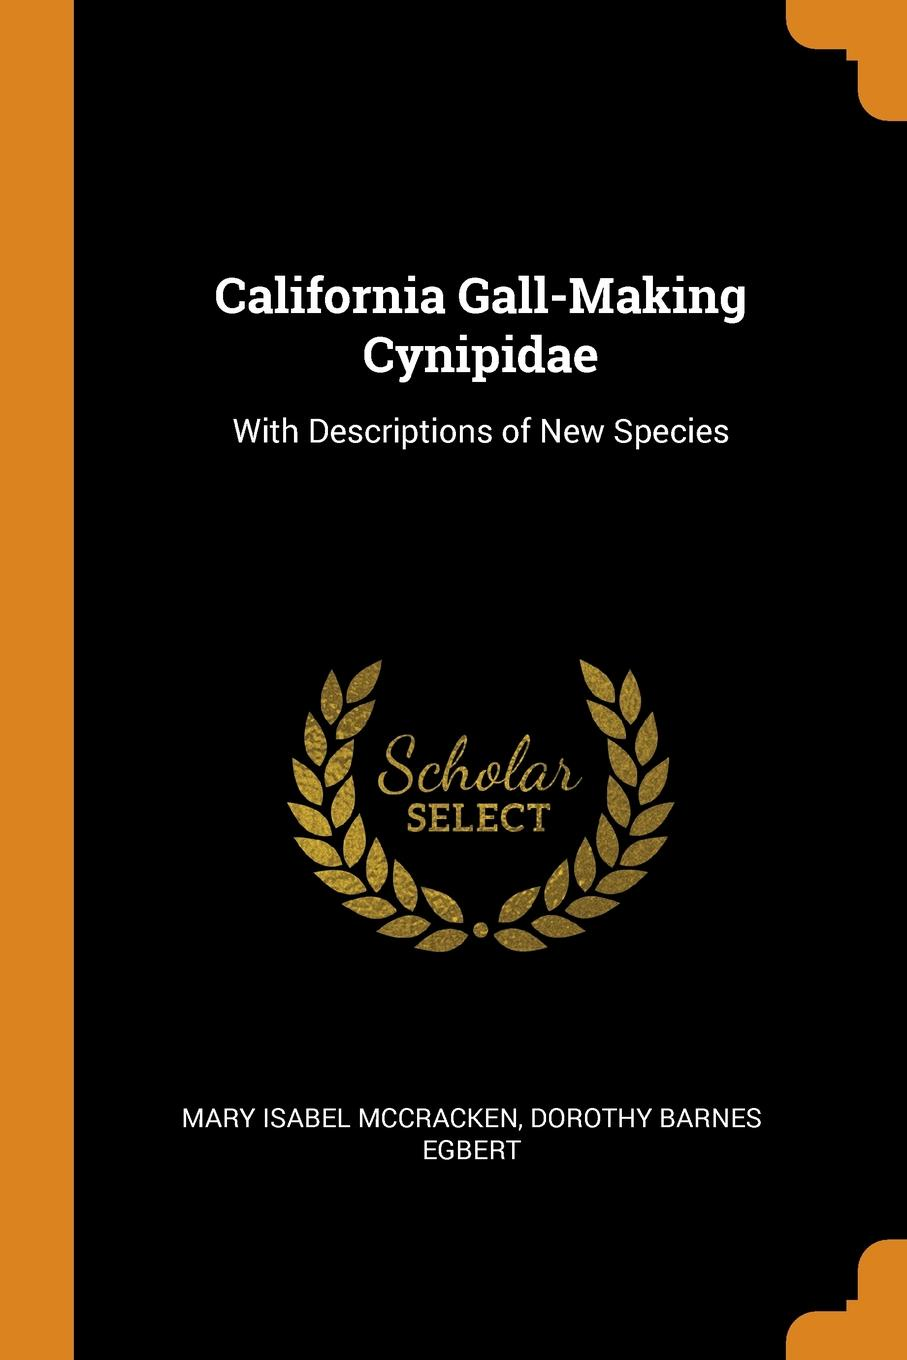 California Gall-Making Cynipidae. With Descriptions of New Species